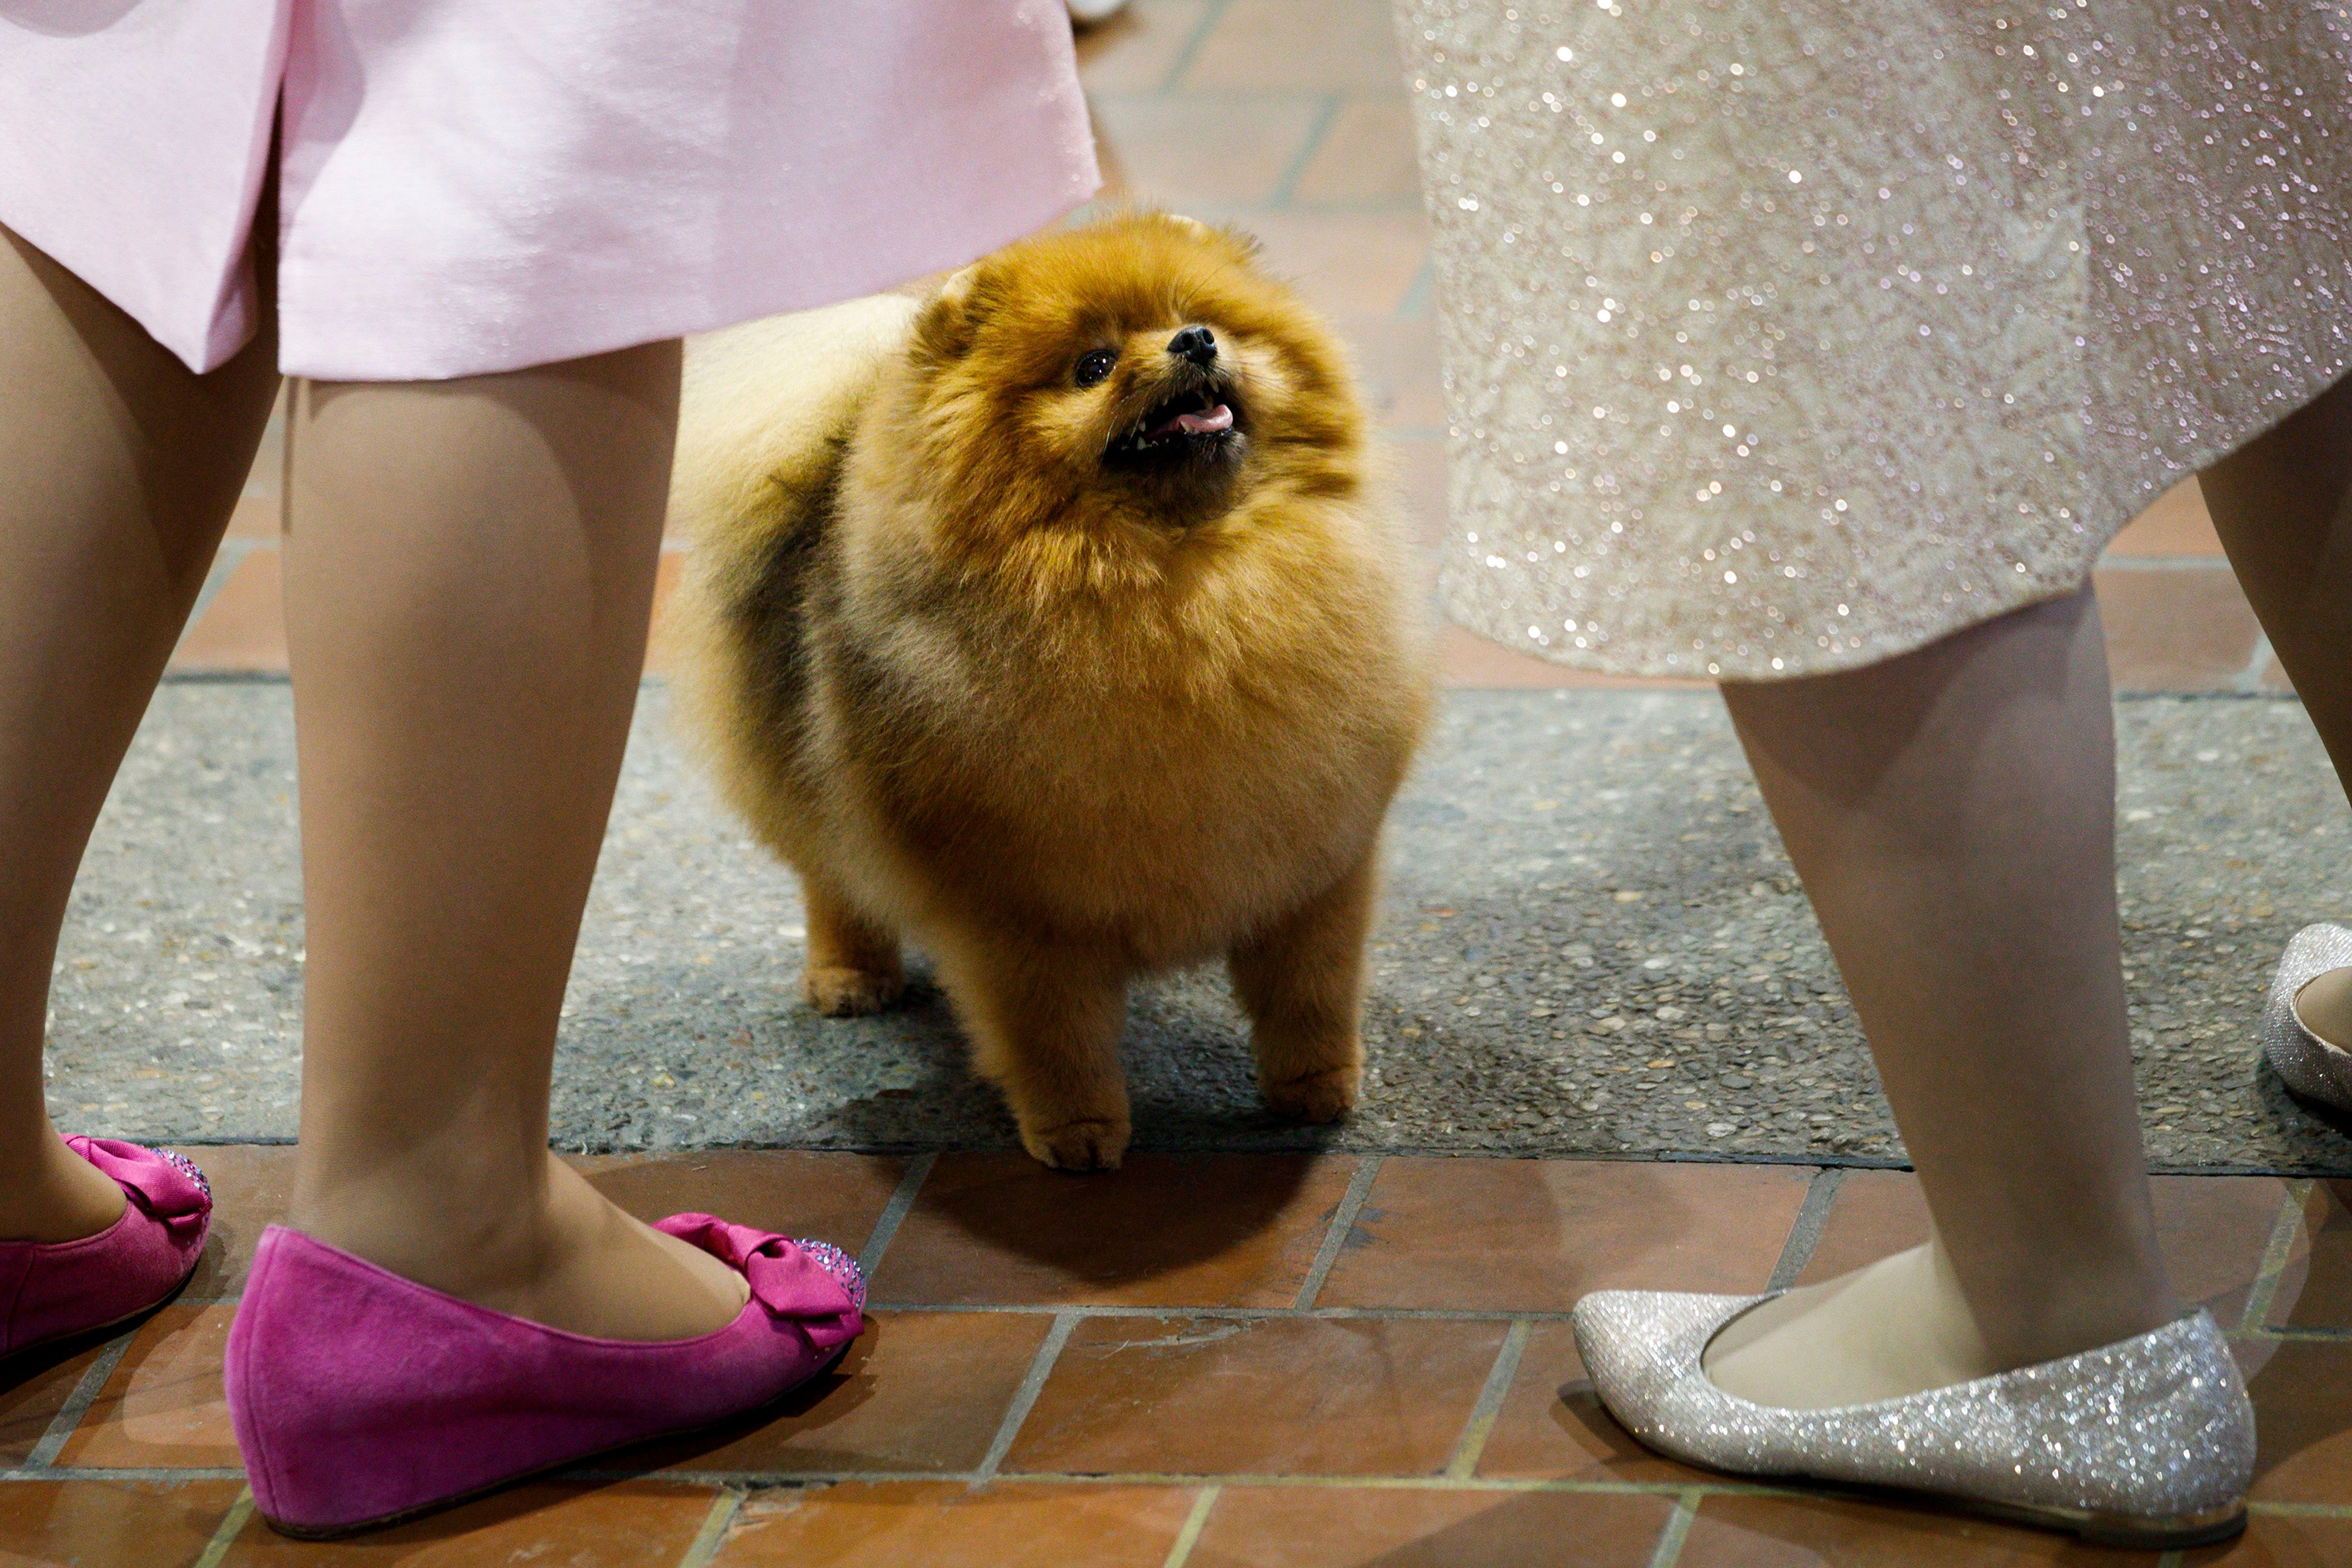 A Pomeranian named 'Fireball' looks for a treat during the 2018 Westminster Kennel Club Dog Show.